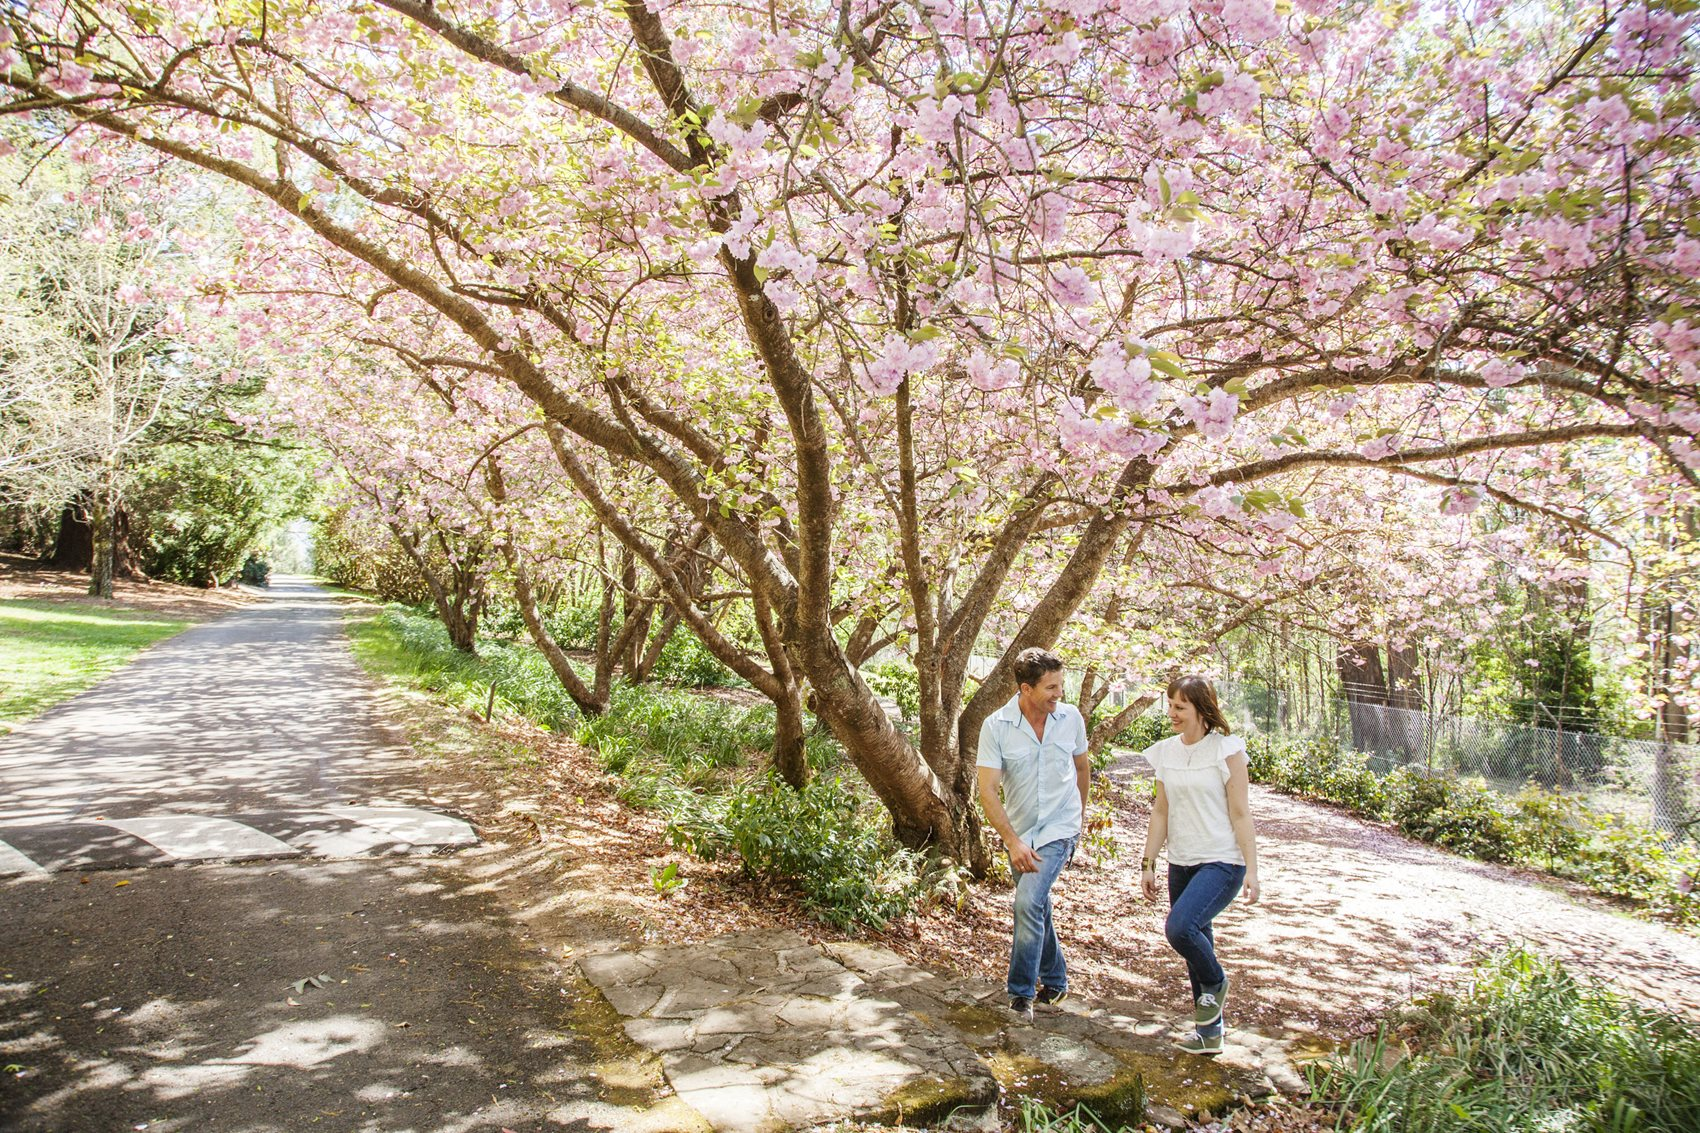 Leap Into Spring With Blue Mountains Botanic Garden Bloom Festivals